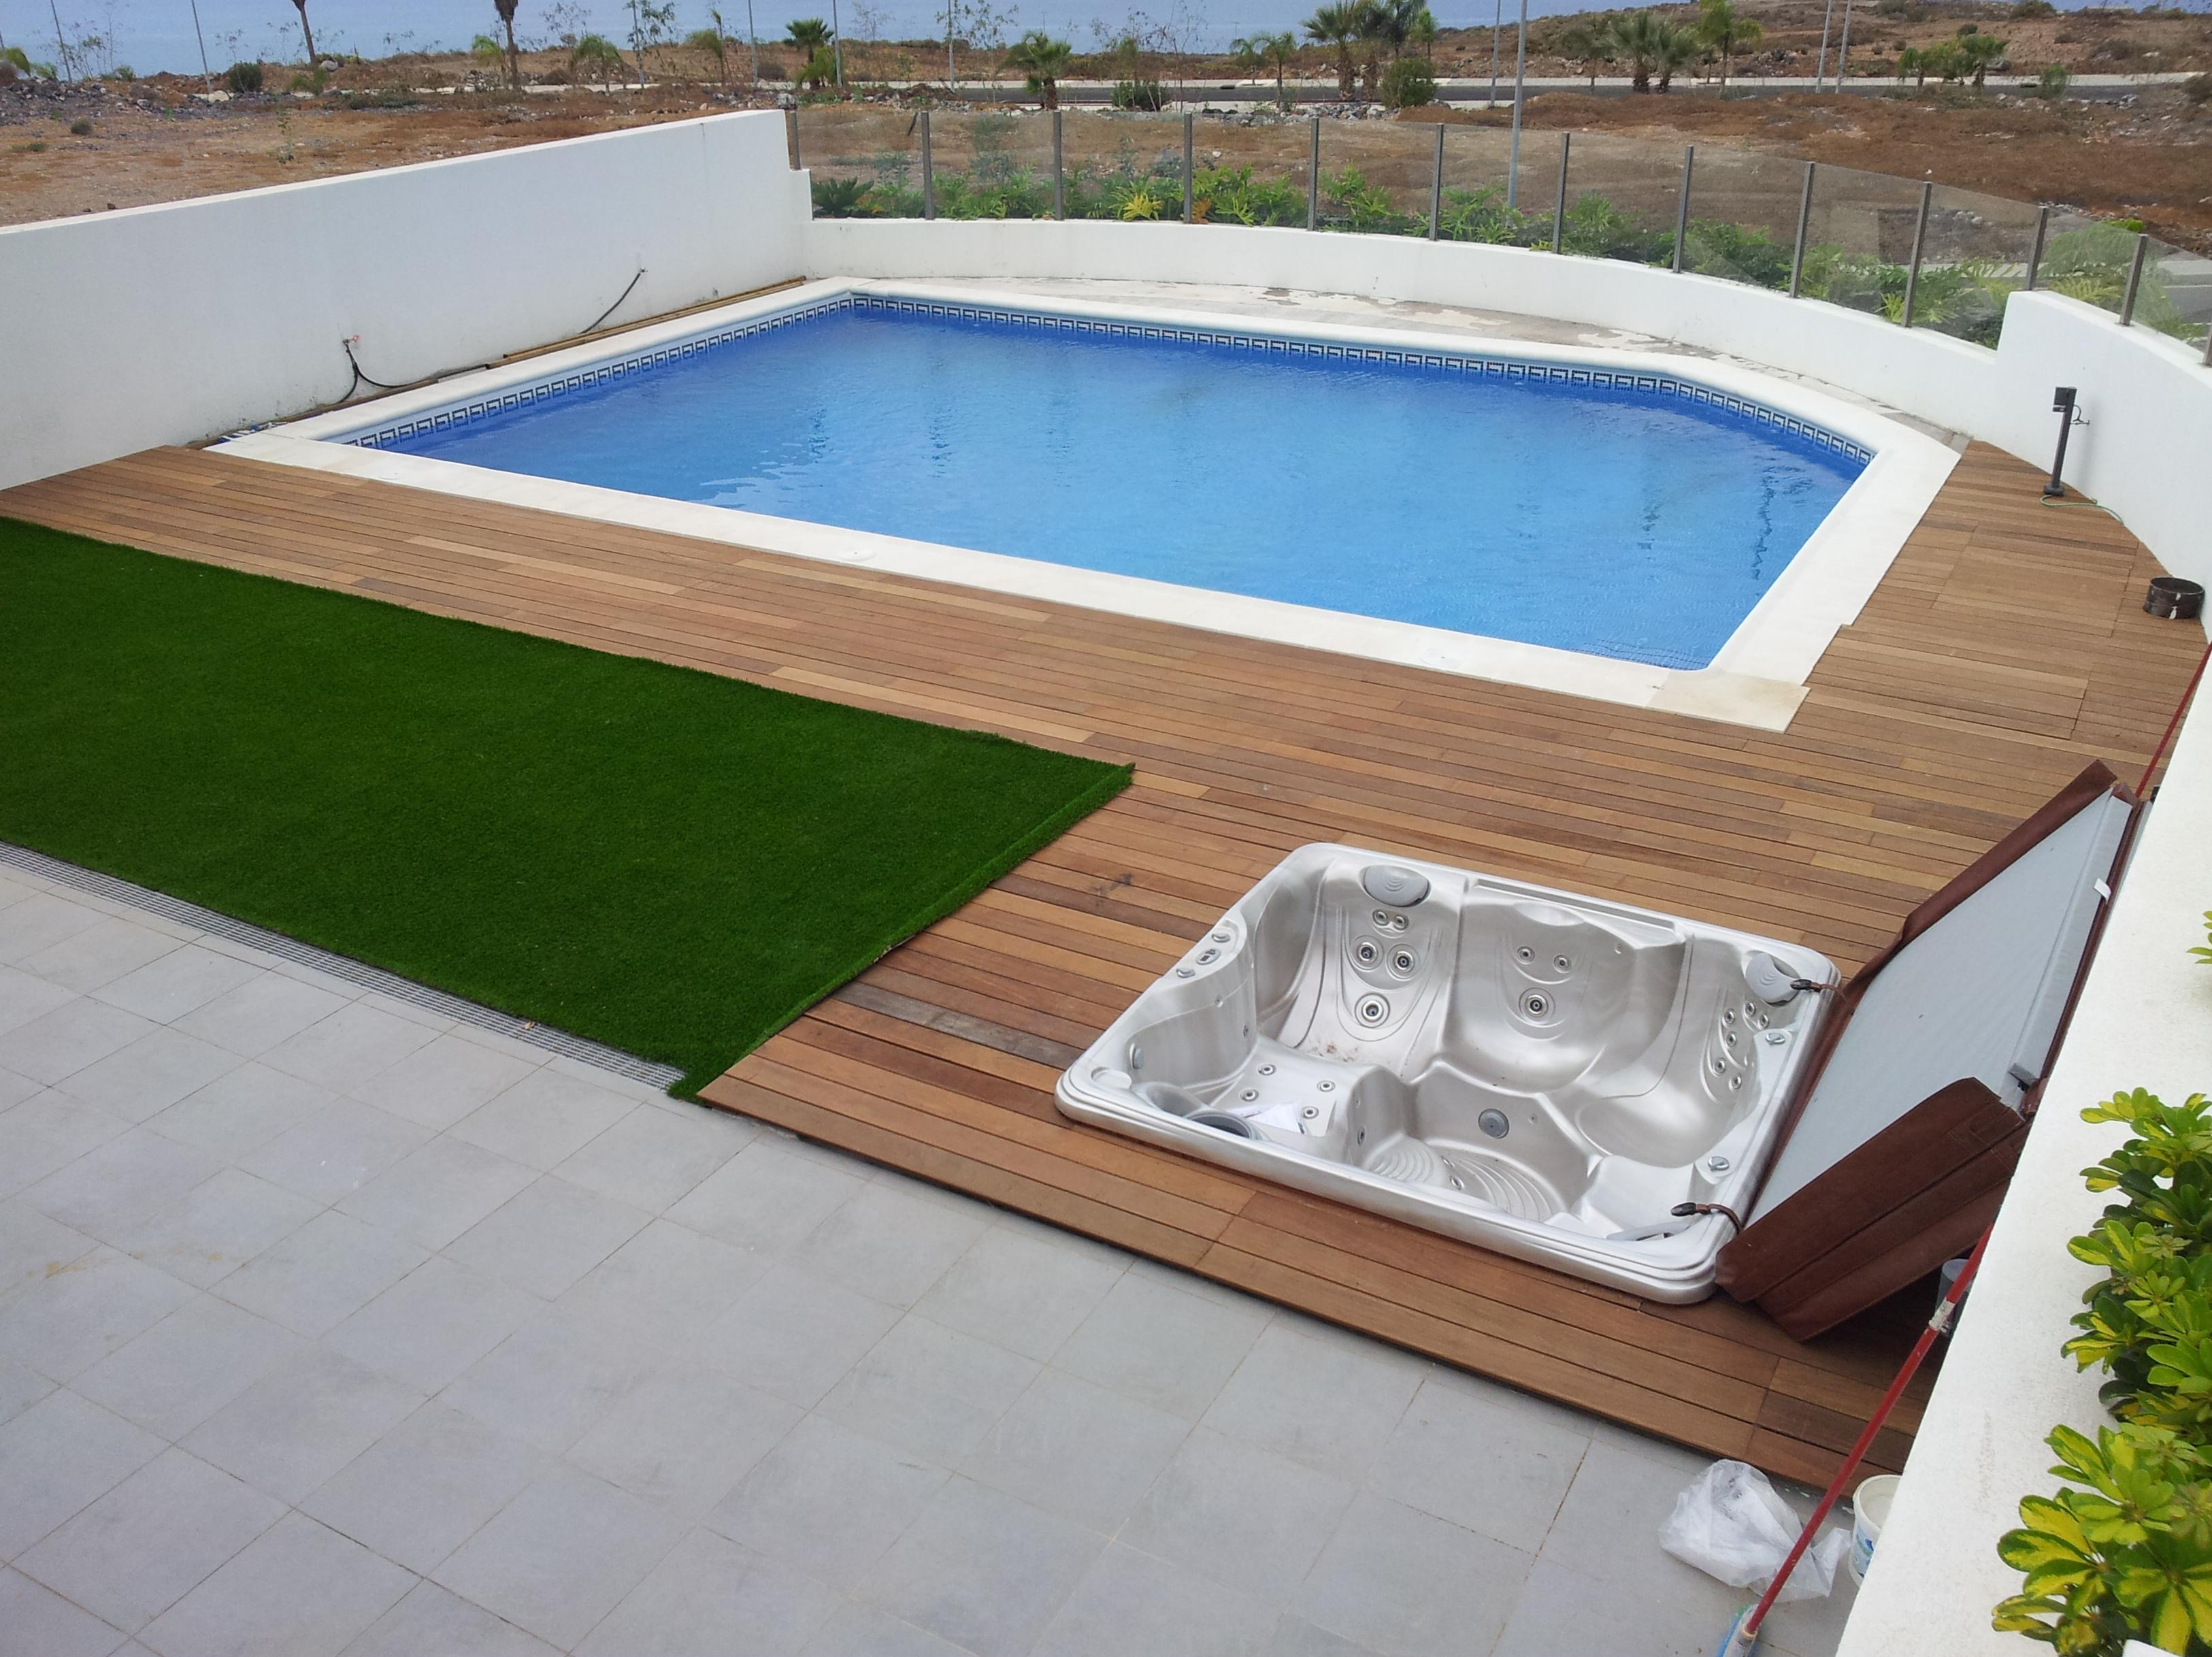 PISCINA, JACUZZY, MADERA IPE Y CÉSPED ARTIFICIAL